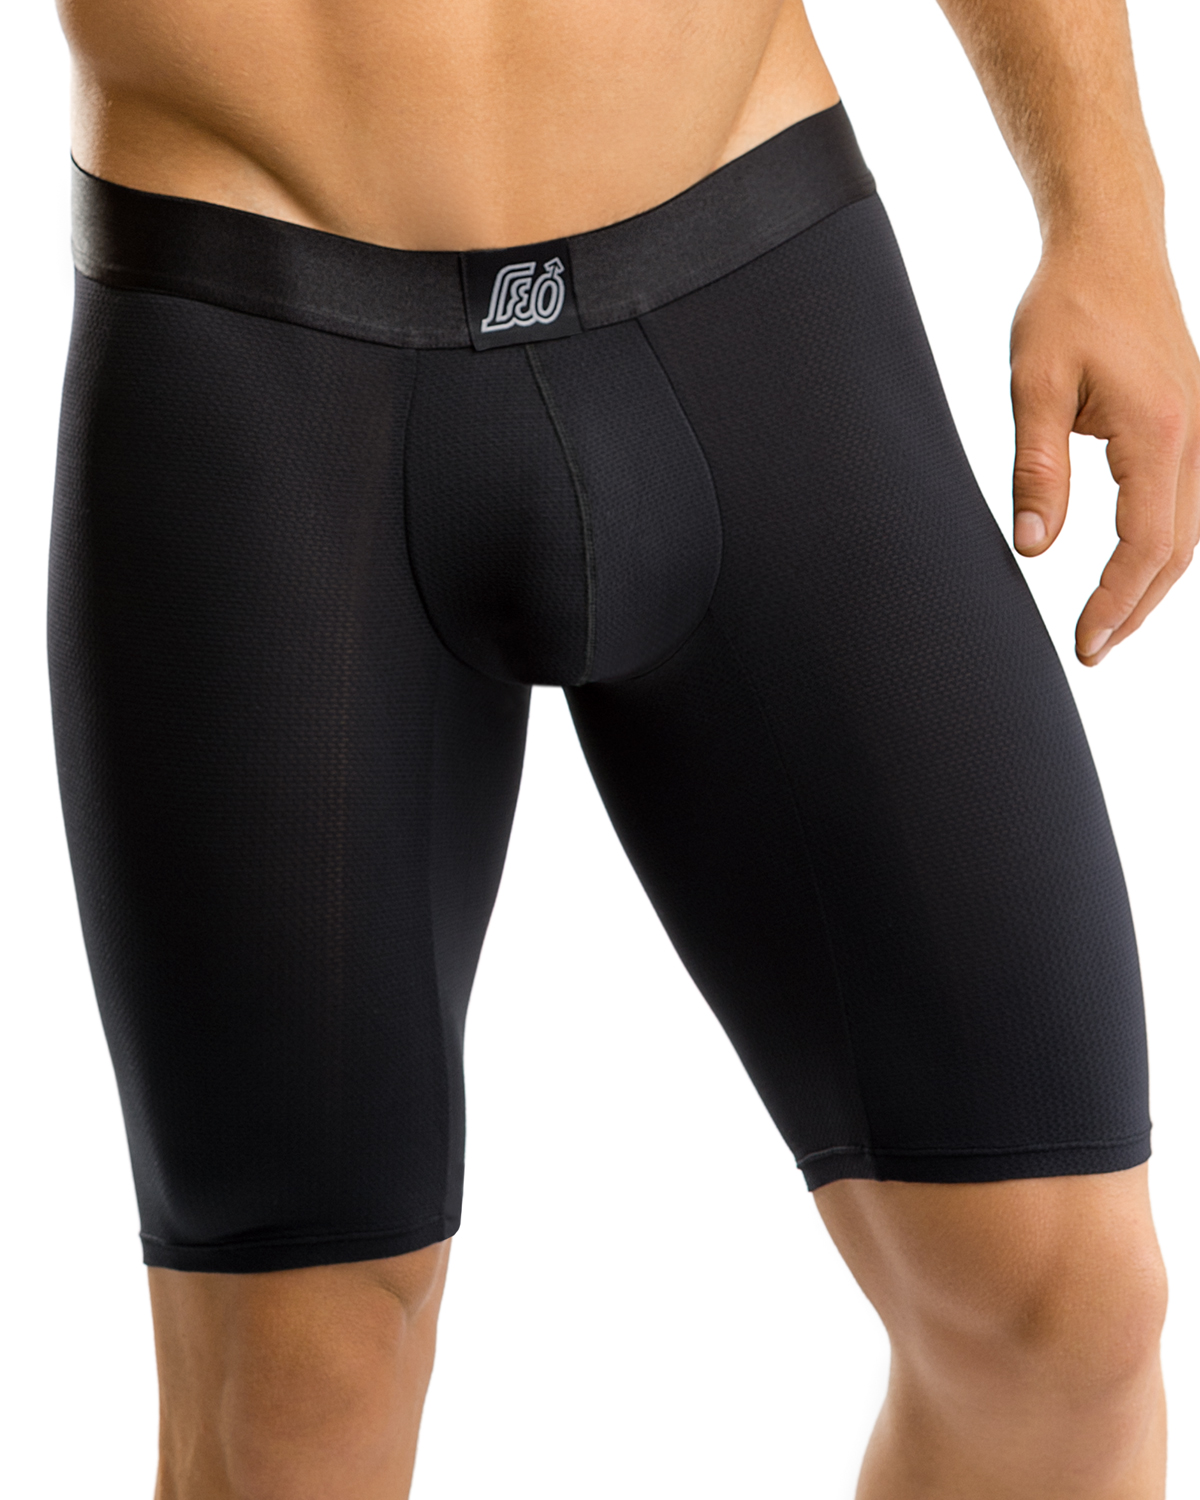 leo advanced fit long boxer brief-700- Black-MainImage